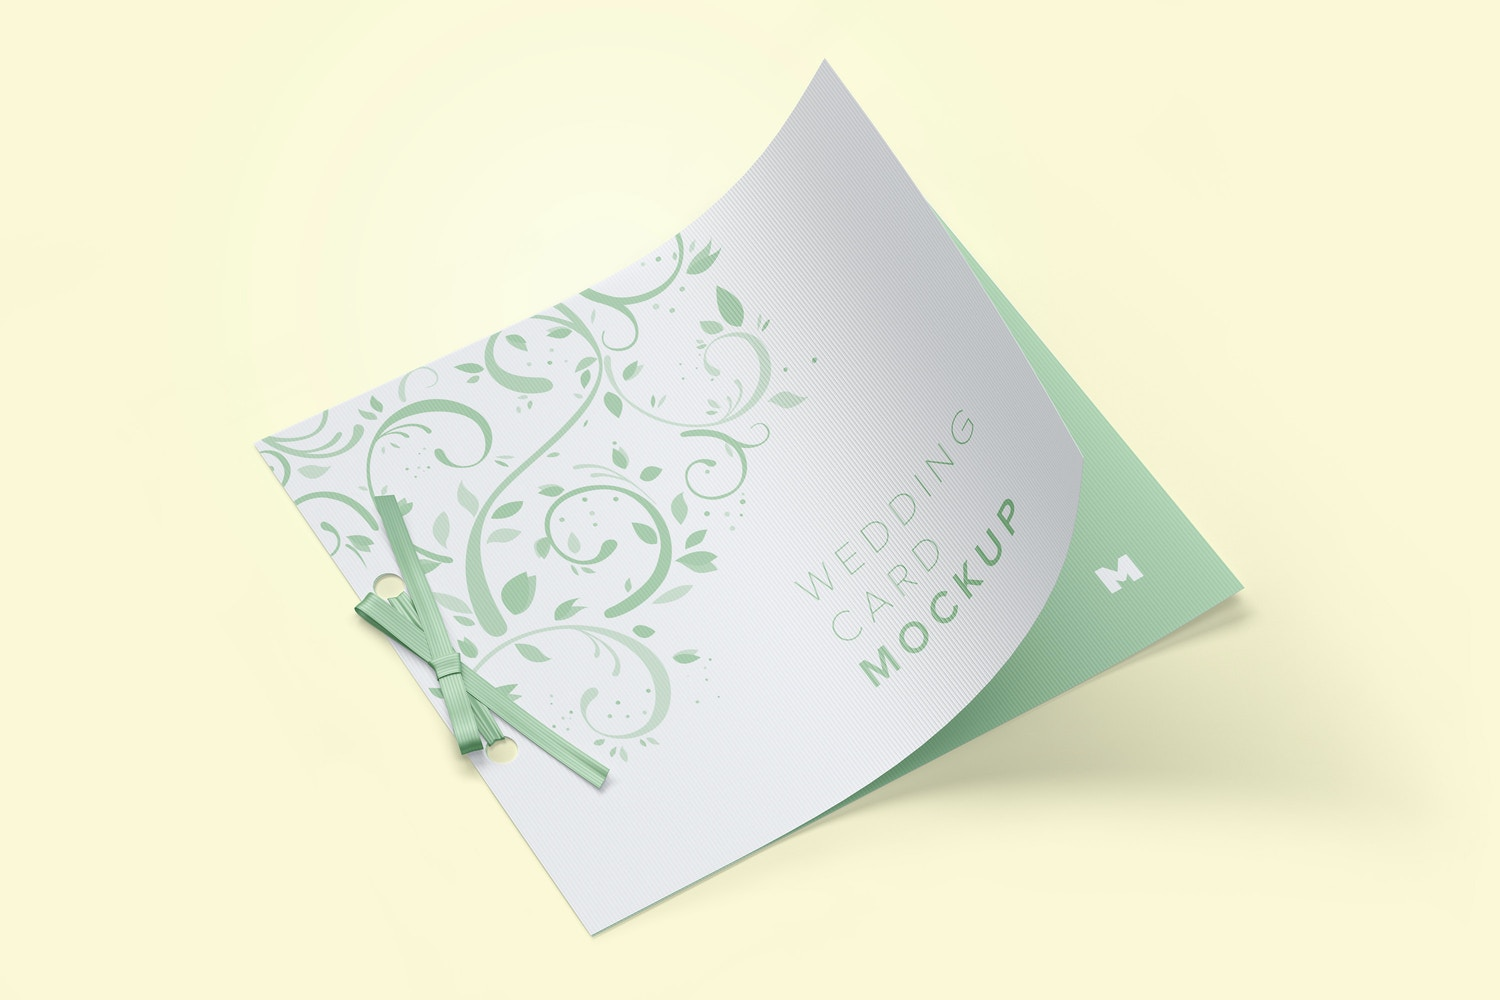 Wedding Card Mockup with Ribbon Bow by Original Mockups on Original Mockups